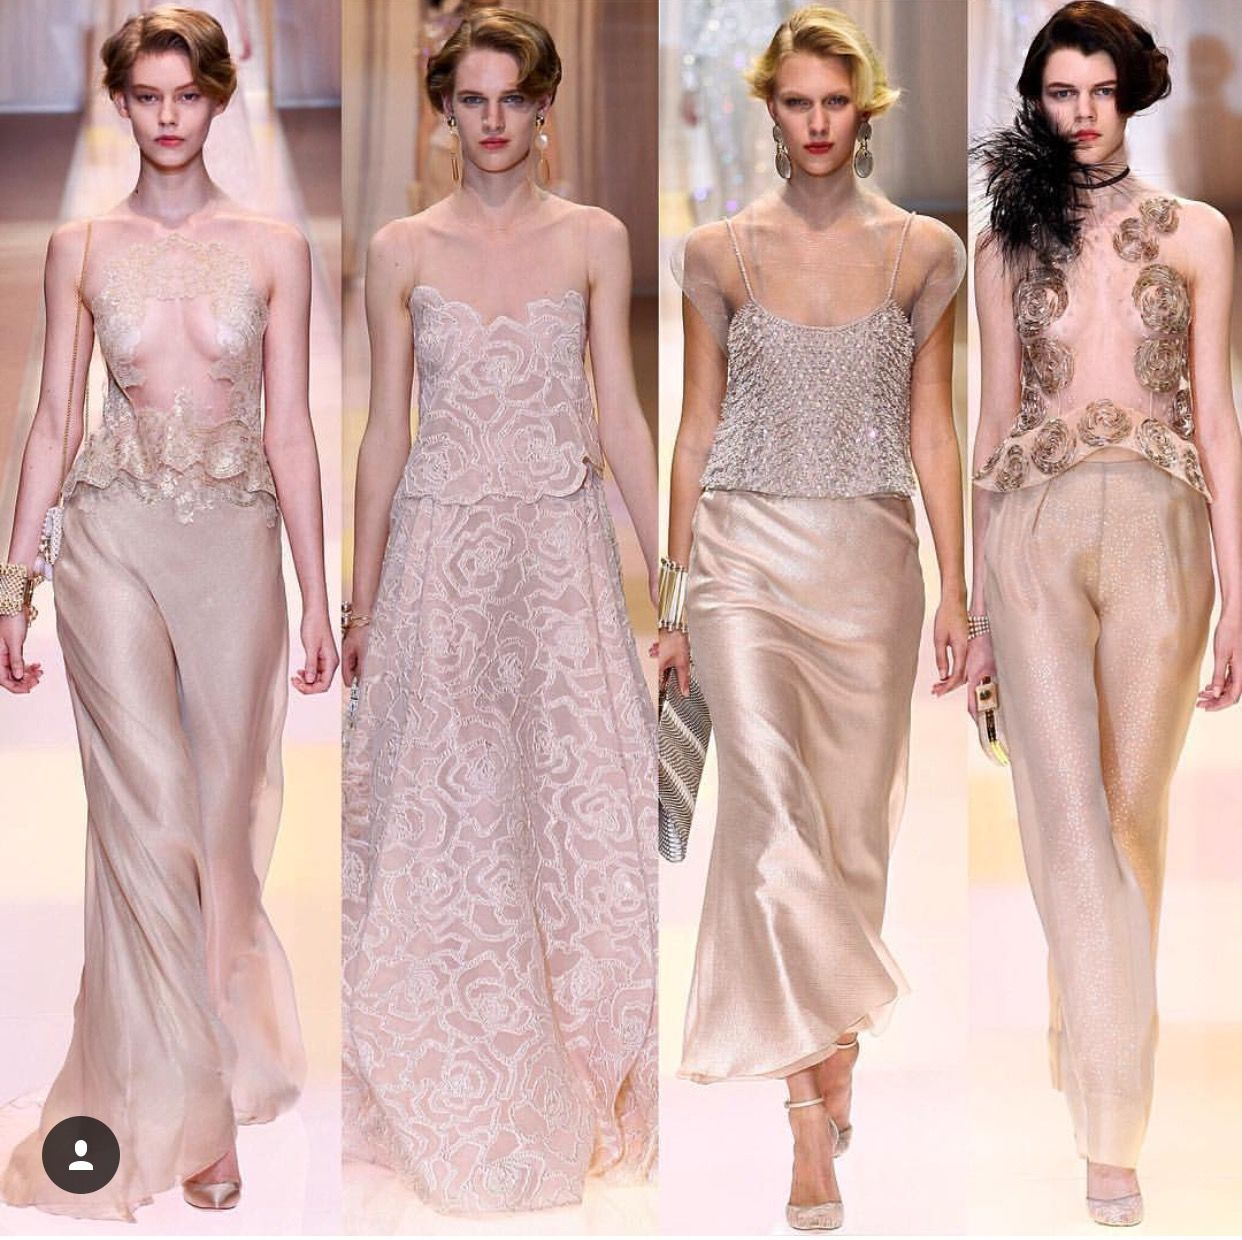 Pin by em meow chanthasone on haut couture pinterest giorgio armani